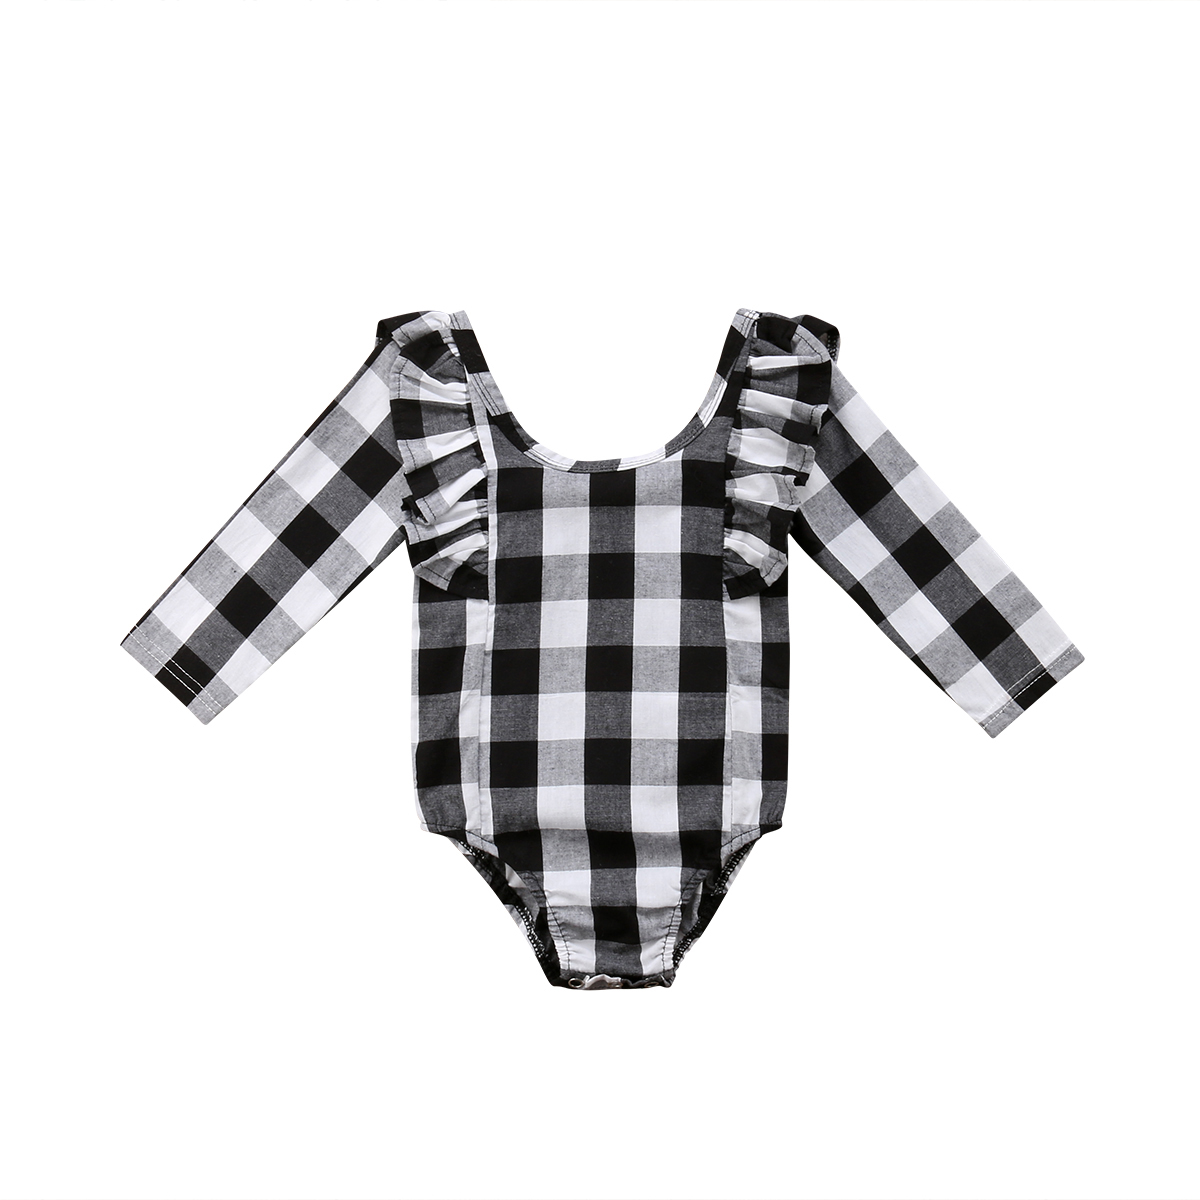 Newborn Infant Baby Girl Ruffle Long Sleeve Plaid   Romper   Jumpsuit Clothes Outfit Baby Clothing